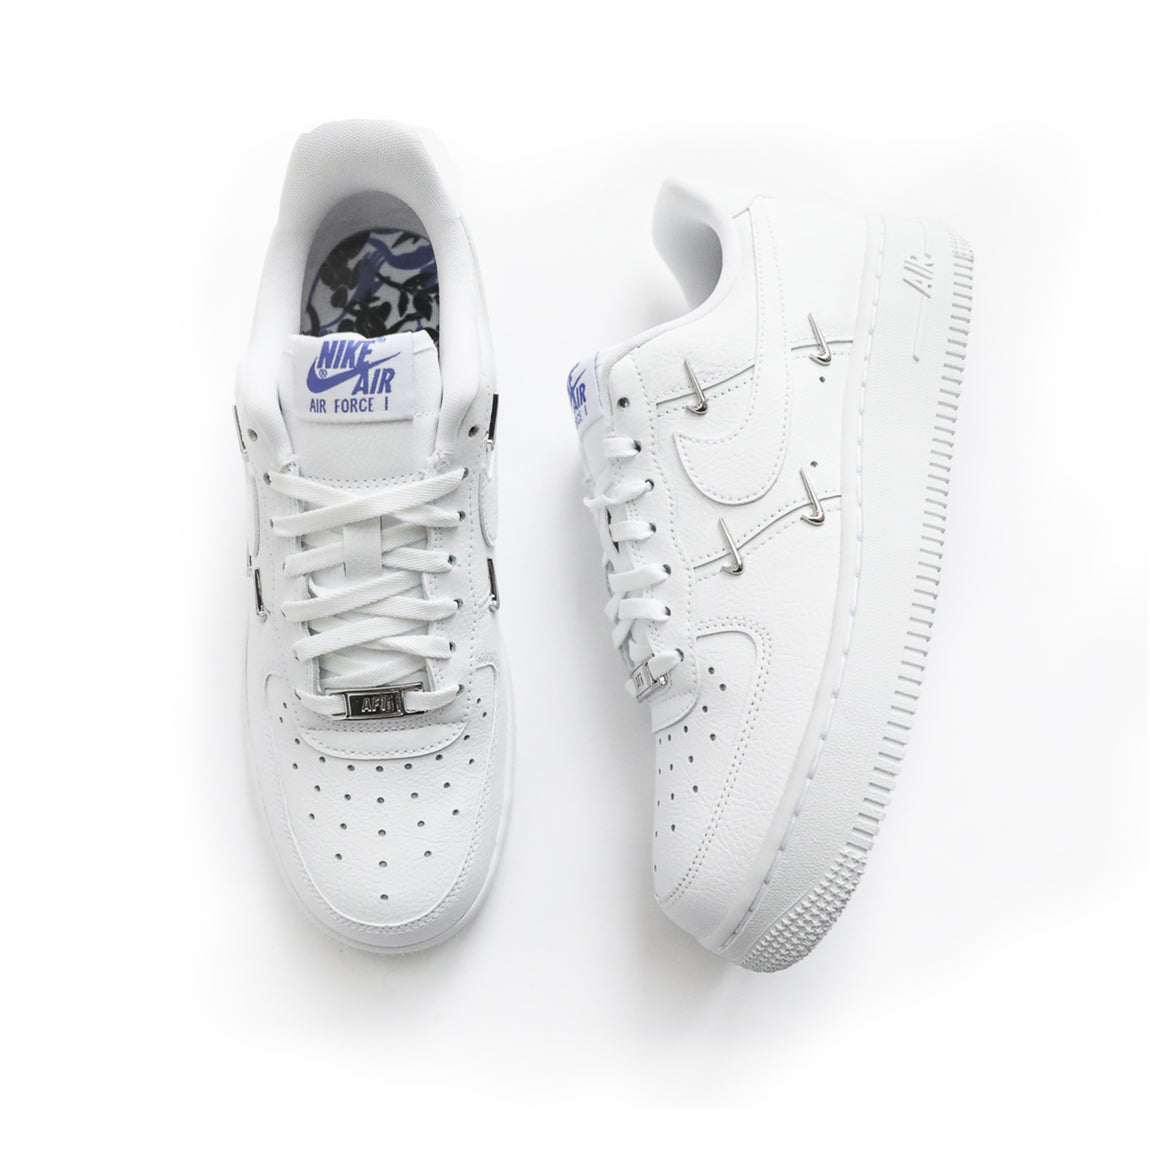 Nike Women's Air Force 1 '07 LX (White/Metallic Gold/Hyper Royal) - Nike Women's Air Force 1 '07 LX (White/Metallic Gold/Hyper Royal) -